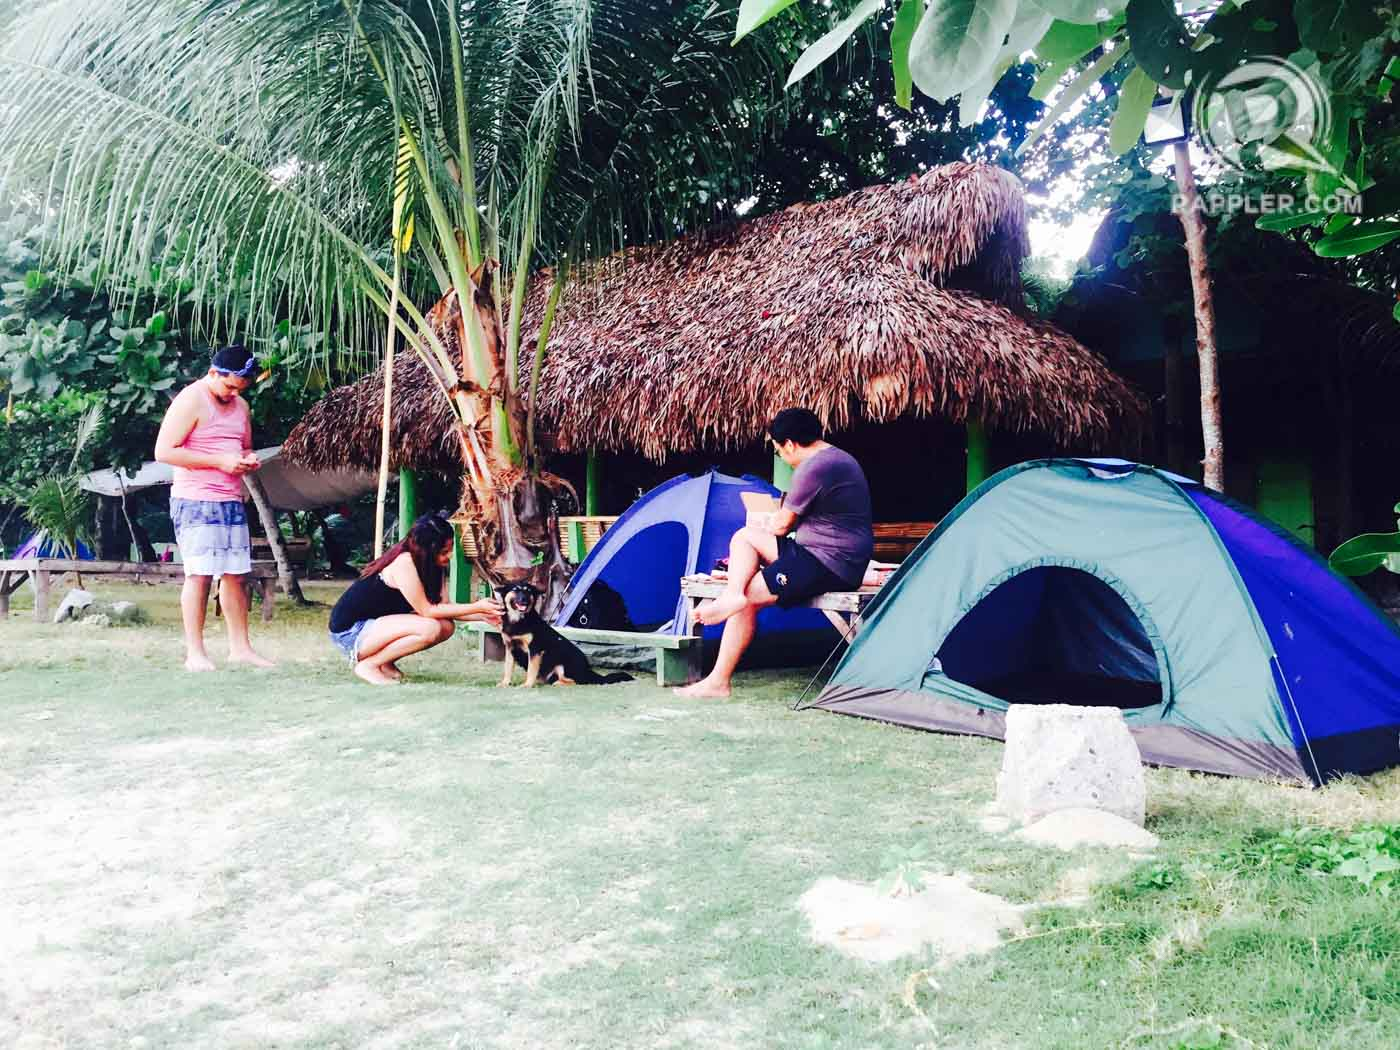 CAMPING. Build your tents just steps away from the stunning beach. Photo by Bonz Magsambol/Rappler